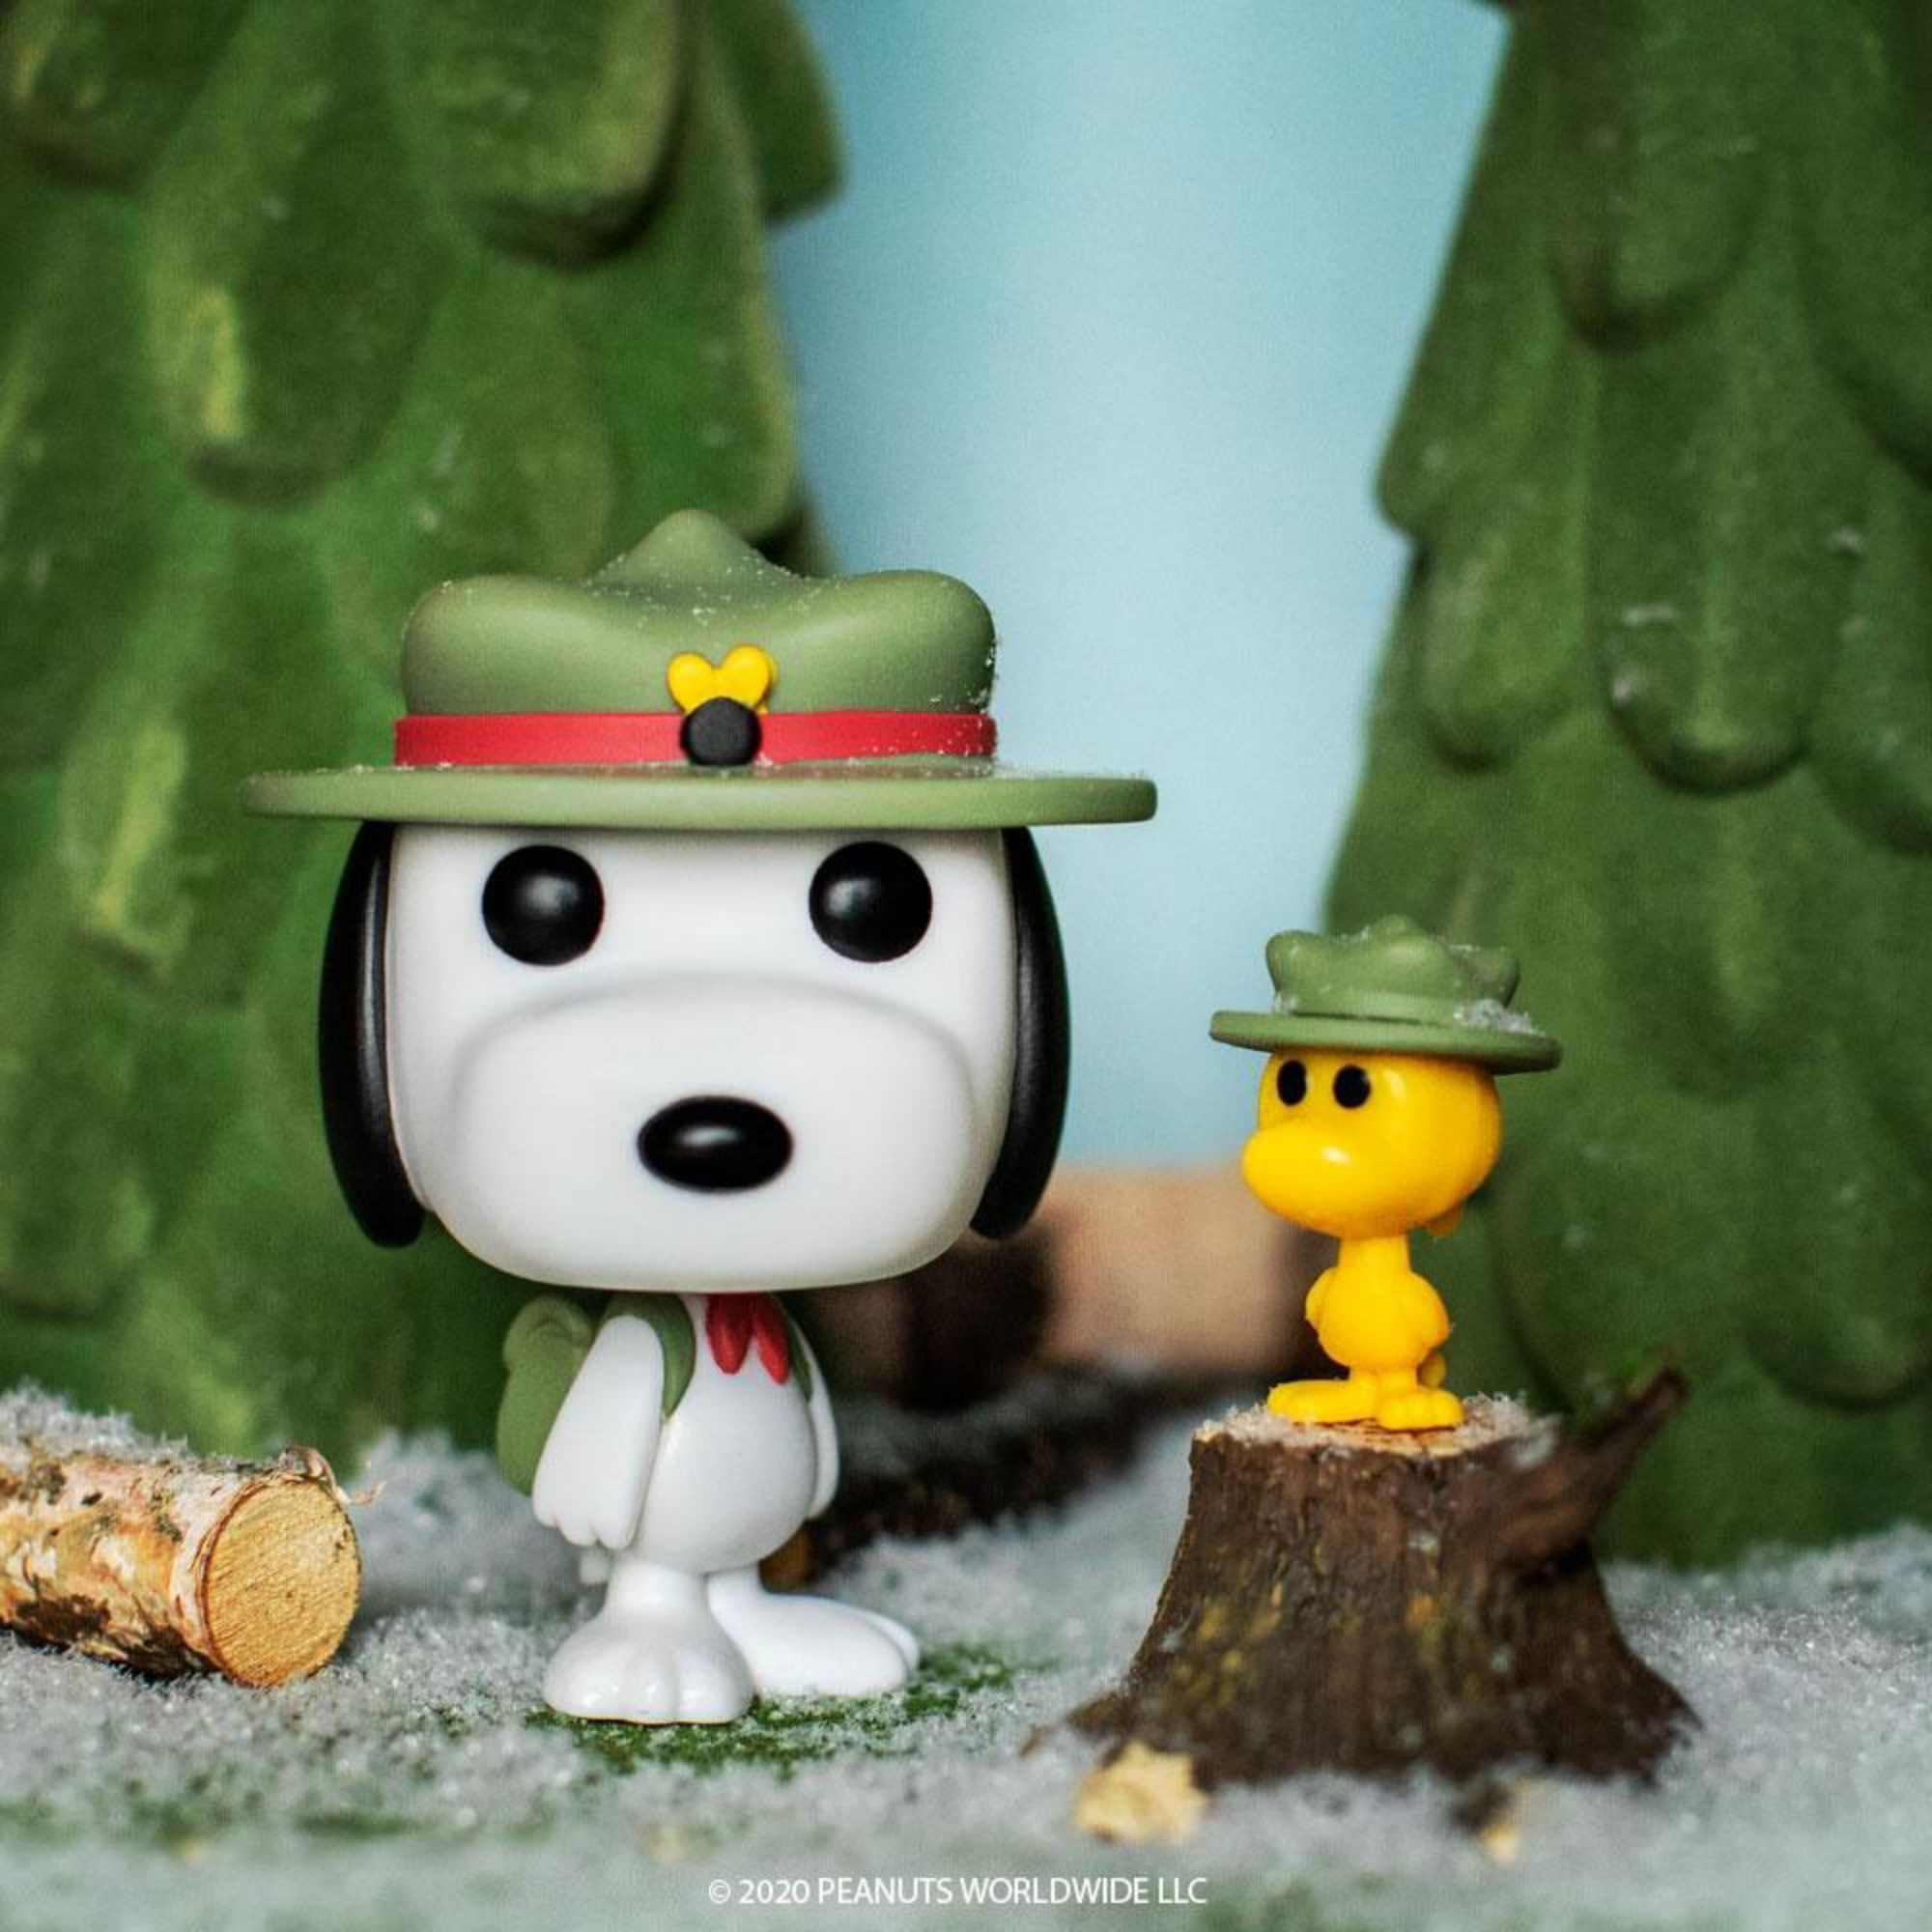 Funko Pop Peanuts Beagle Scout Snoopy with Woodstock #885  - Game Land Brinquedos